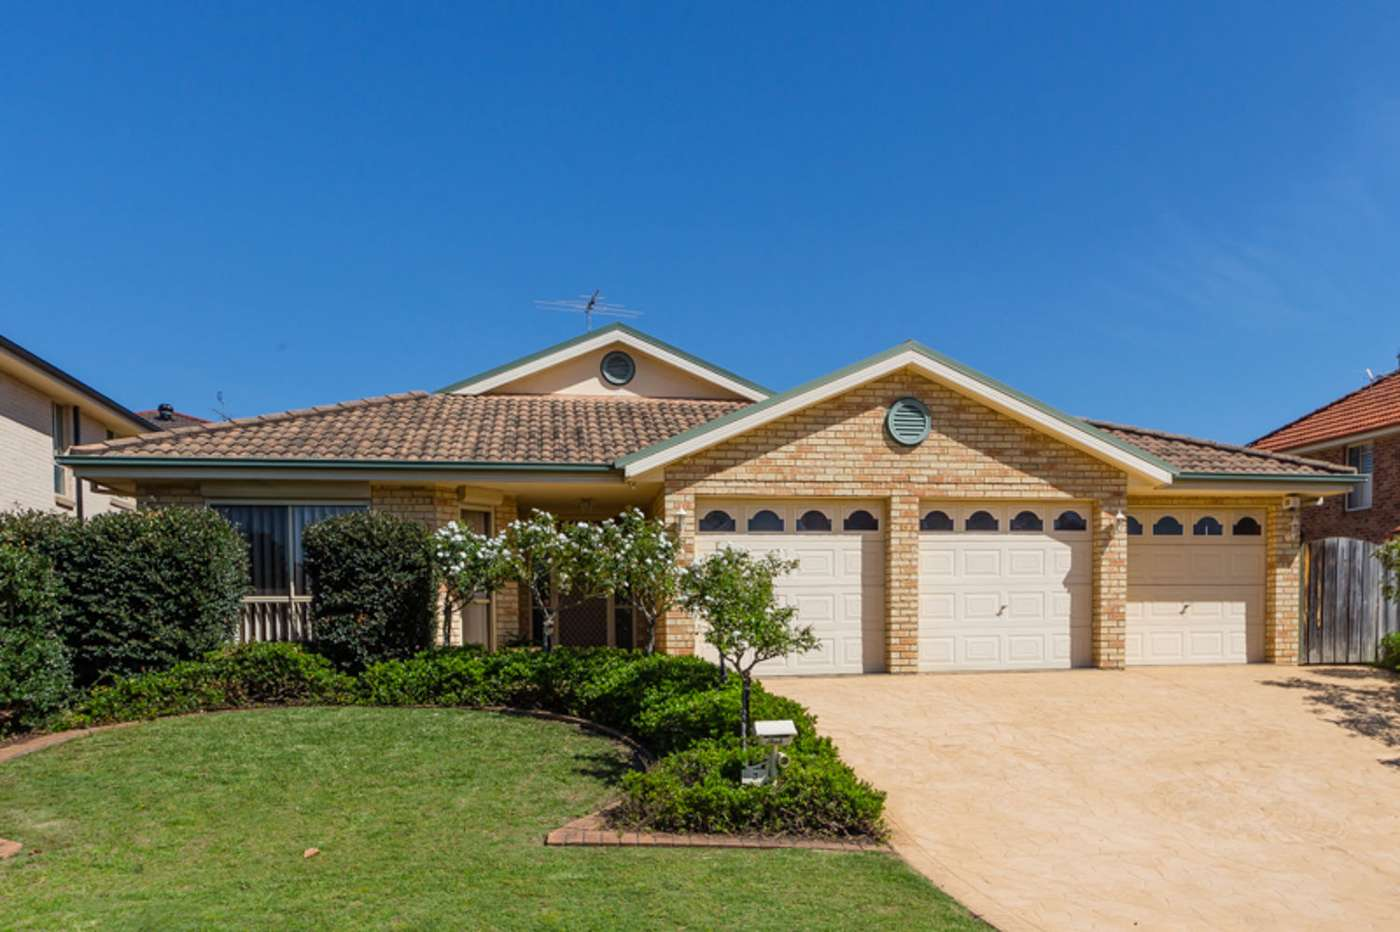 Main view of Homely house listing, 3 Softwood Avenue, Beaumont Hills, NSW 2155